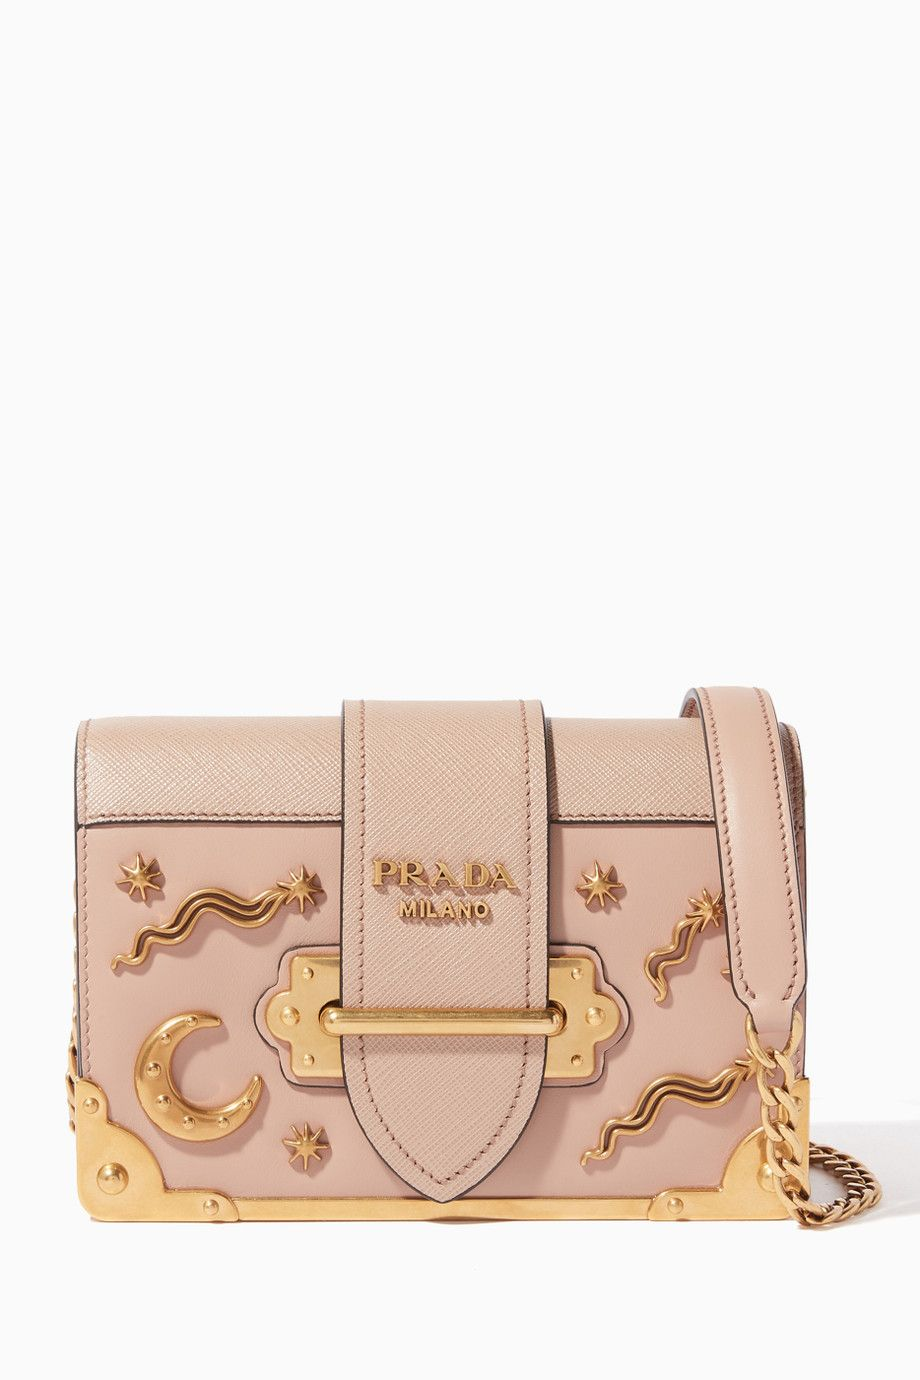 51ac39c19643 Shop Luxury Prada Beige Mini Moon & Star Cahier Bag | Ounass UAE ...